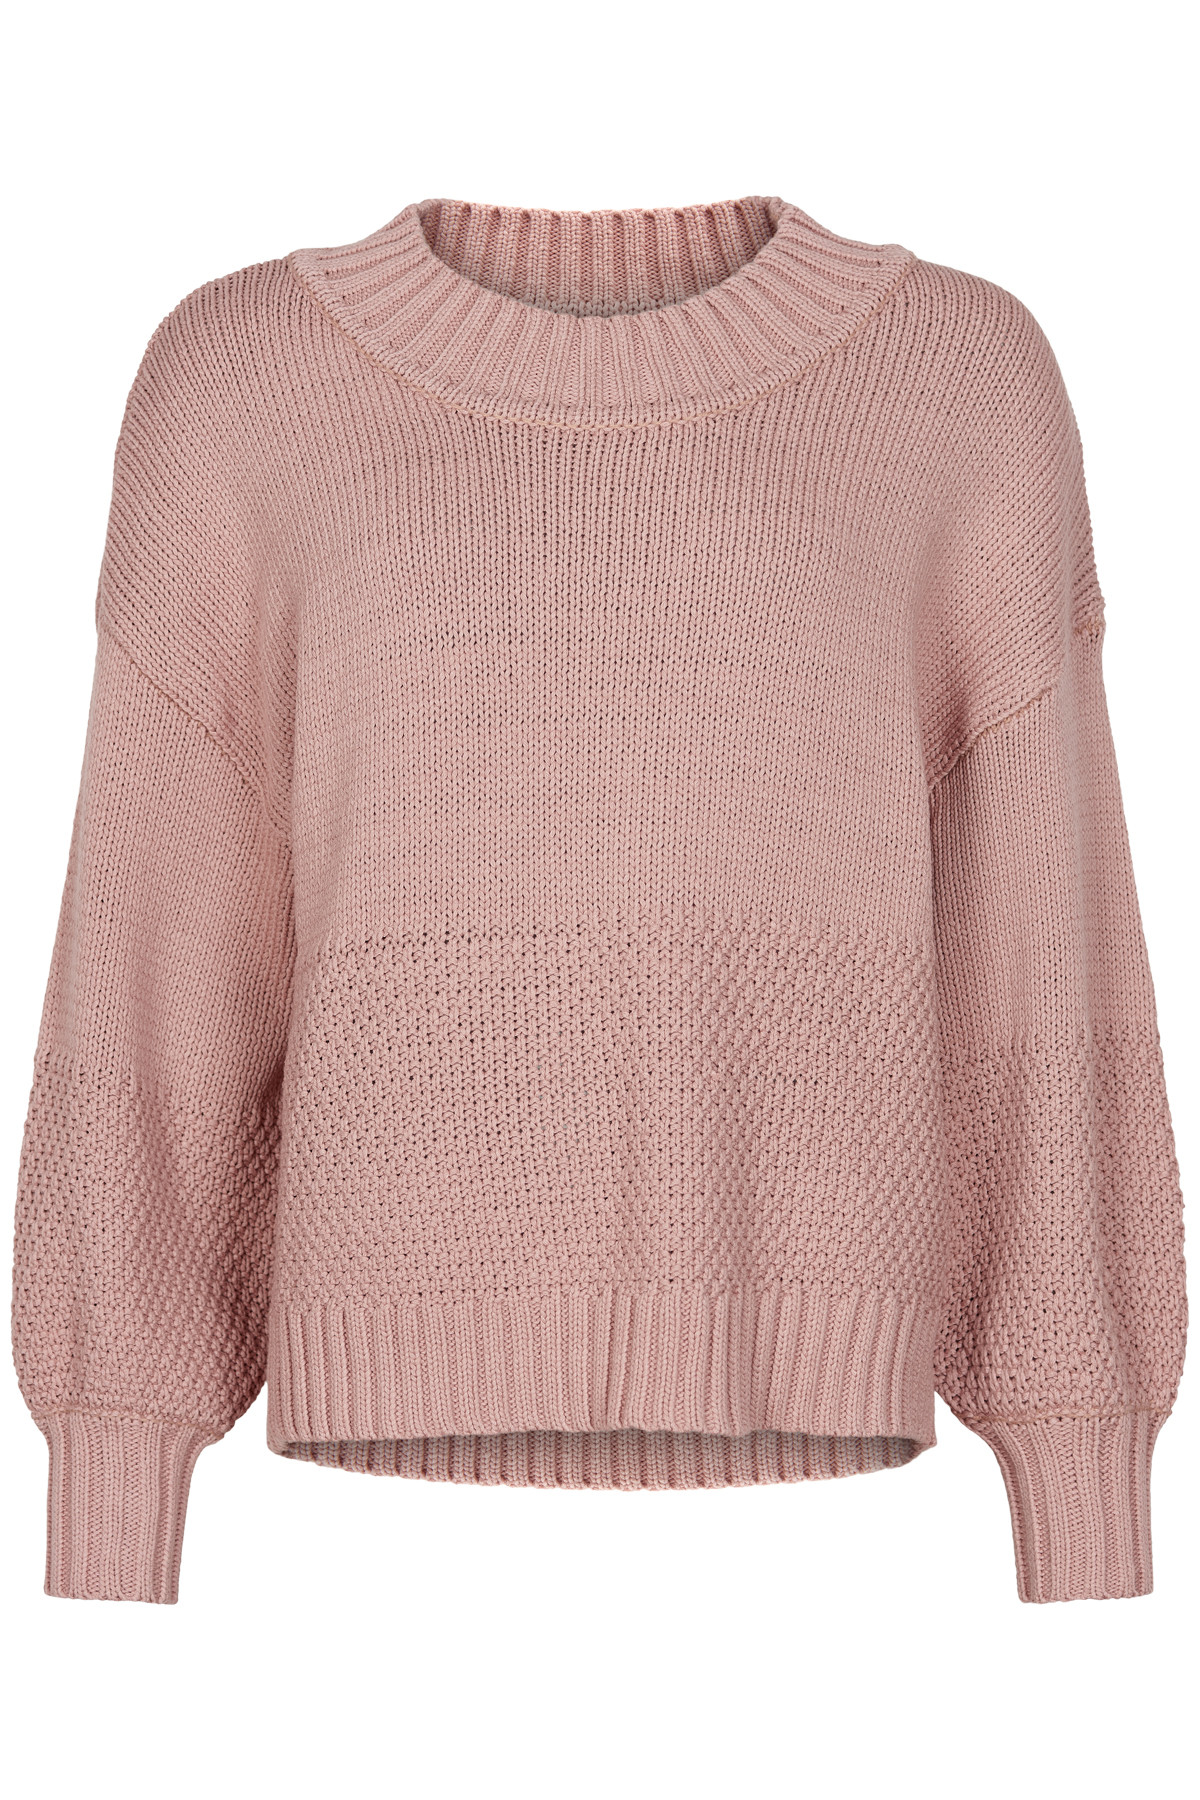 Image of AND LESS ALANIESE PULLOVER 5120203 (Pale Mauve, XL)